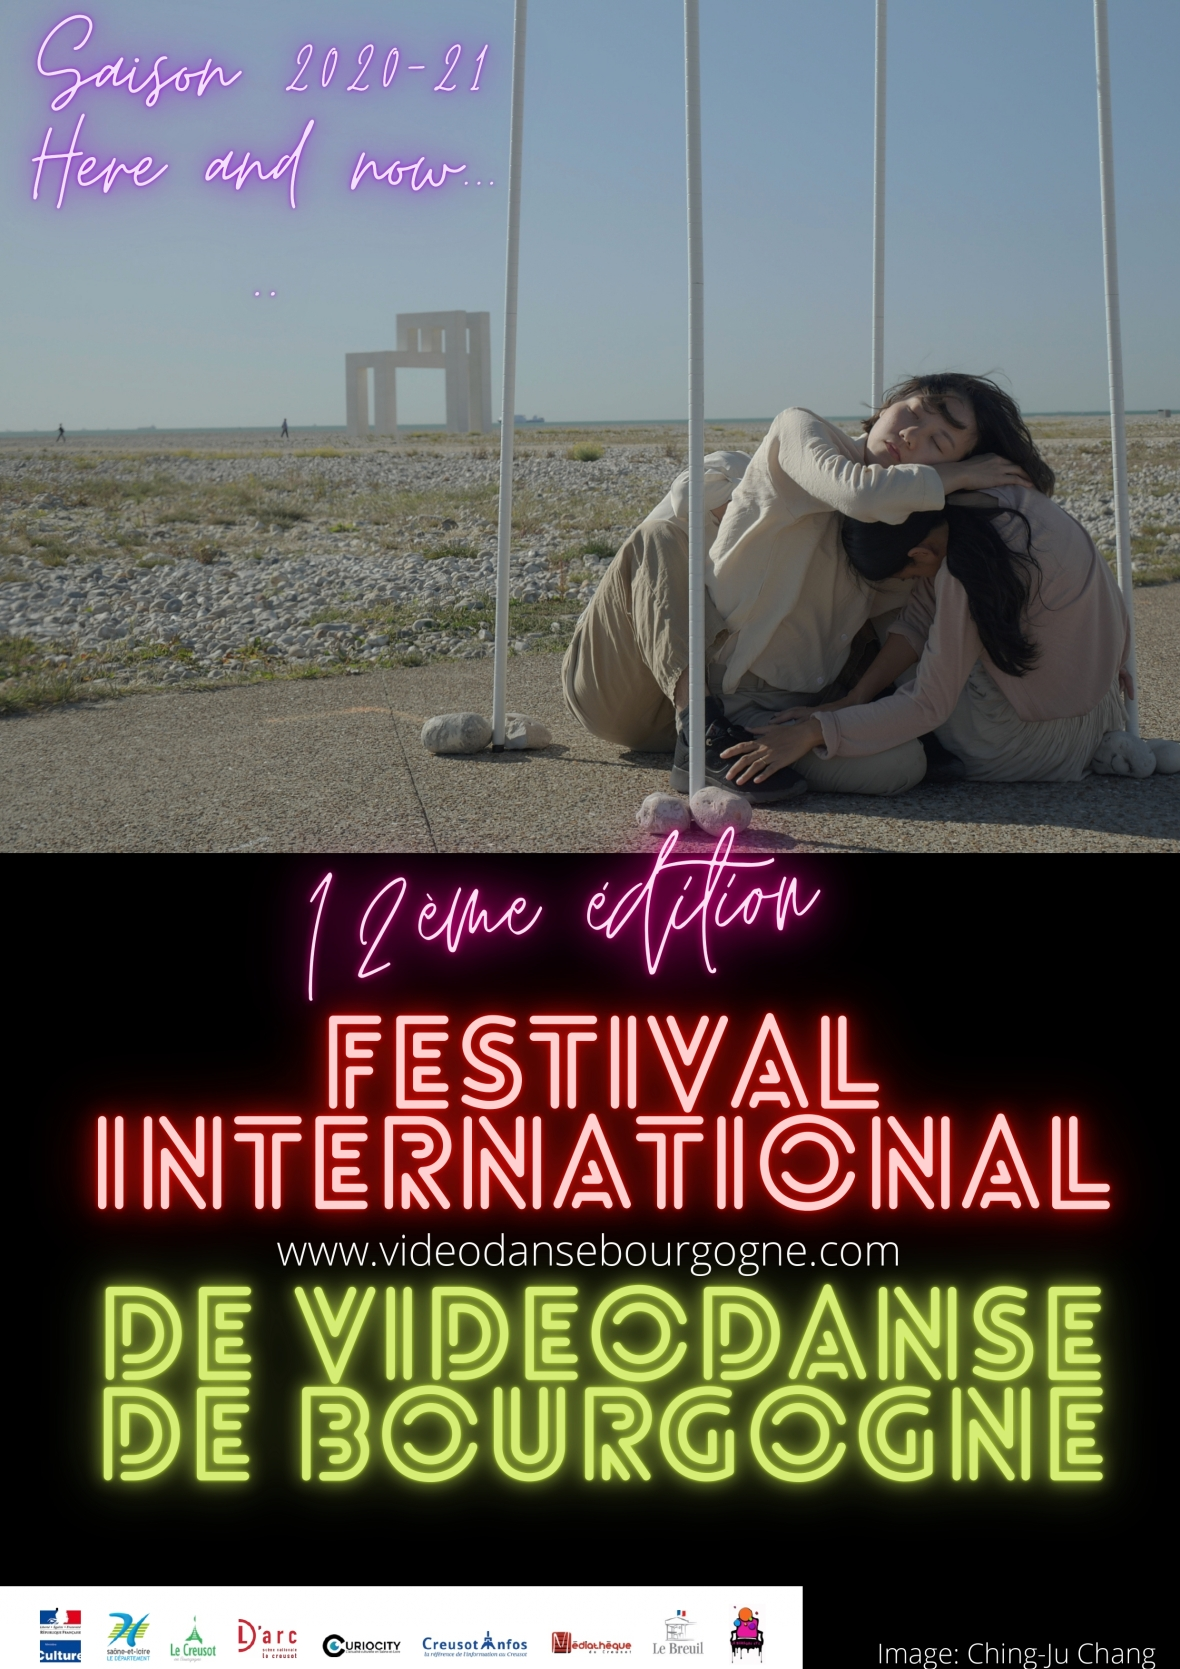 FestivalInternational de VIDEODANSE-4_pages-to-jpg-0001